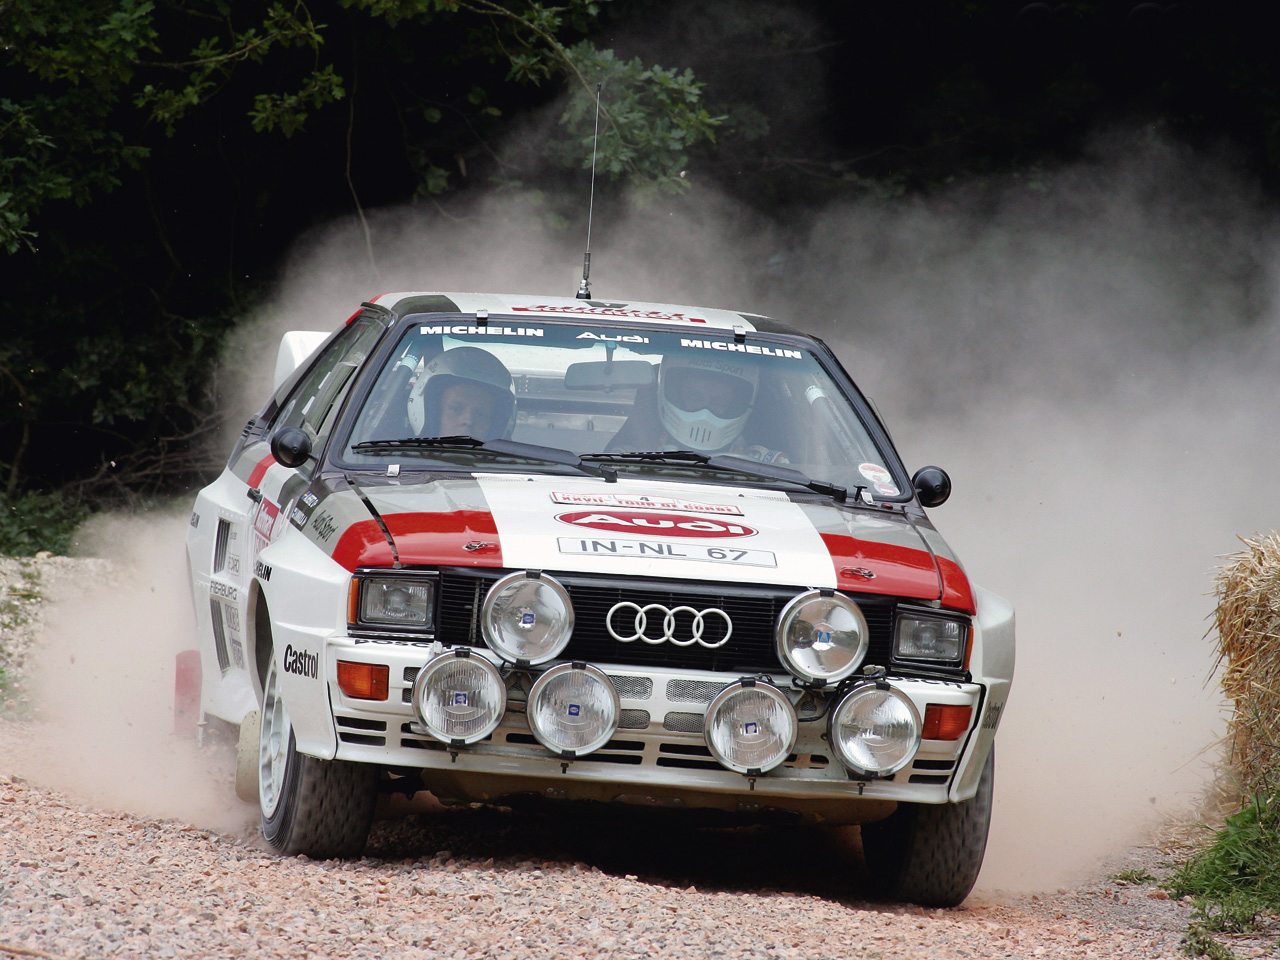 Audi Quattro Group B Rally Car Wallpapers Cool Cars Wallpaper 1280x960